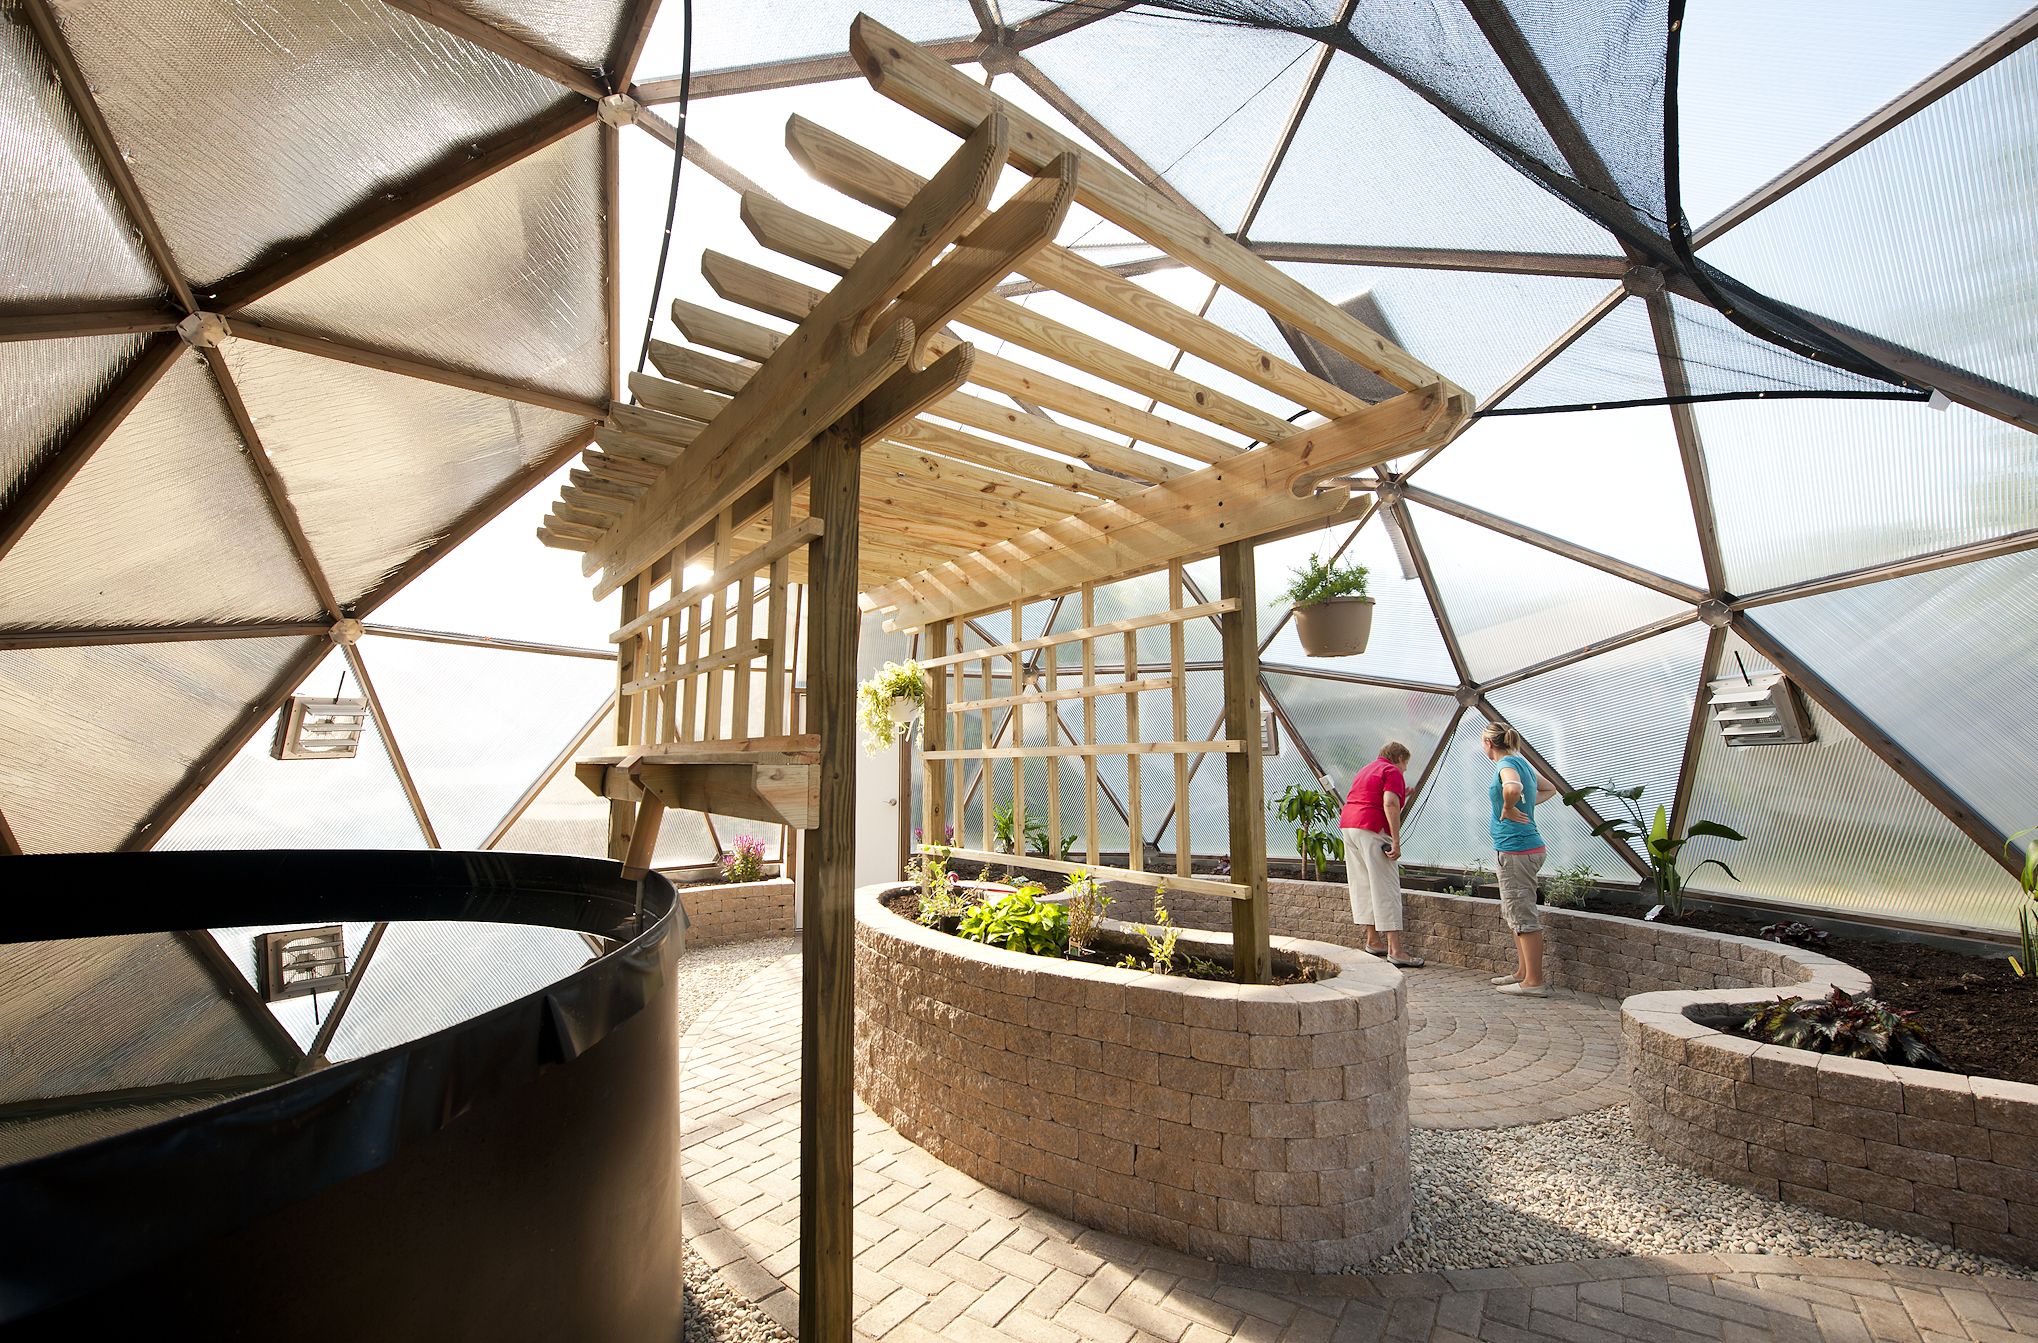 Photo of the inside of Mini University at Wright State University's new learning space–a geodesic greenhouse.